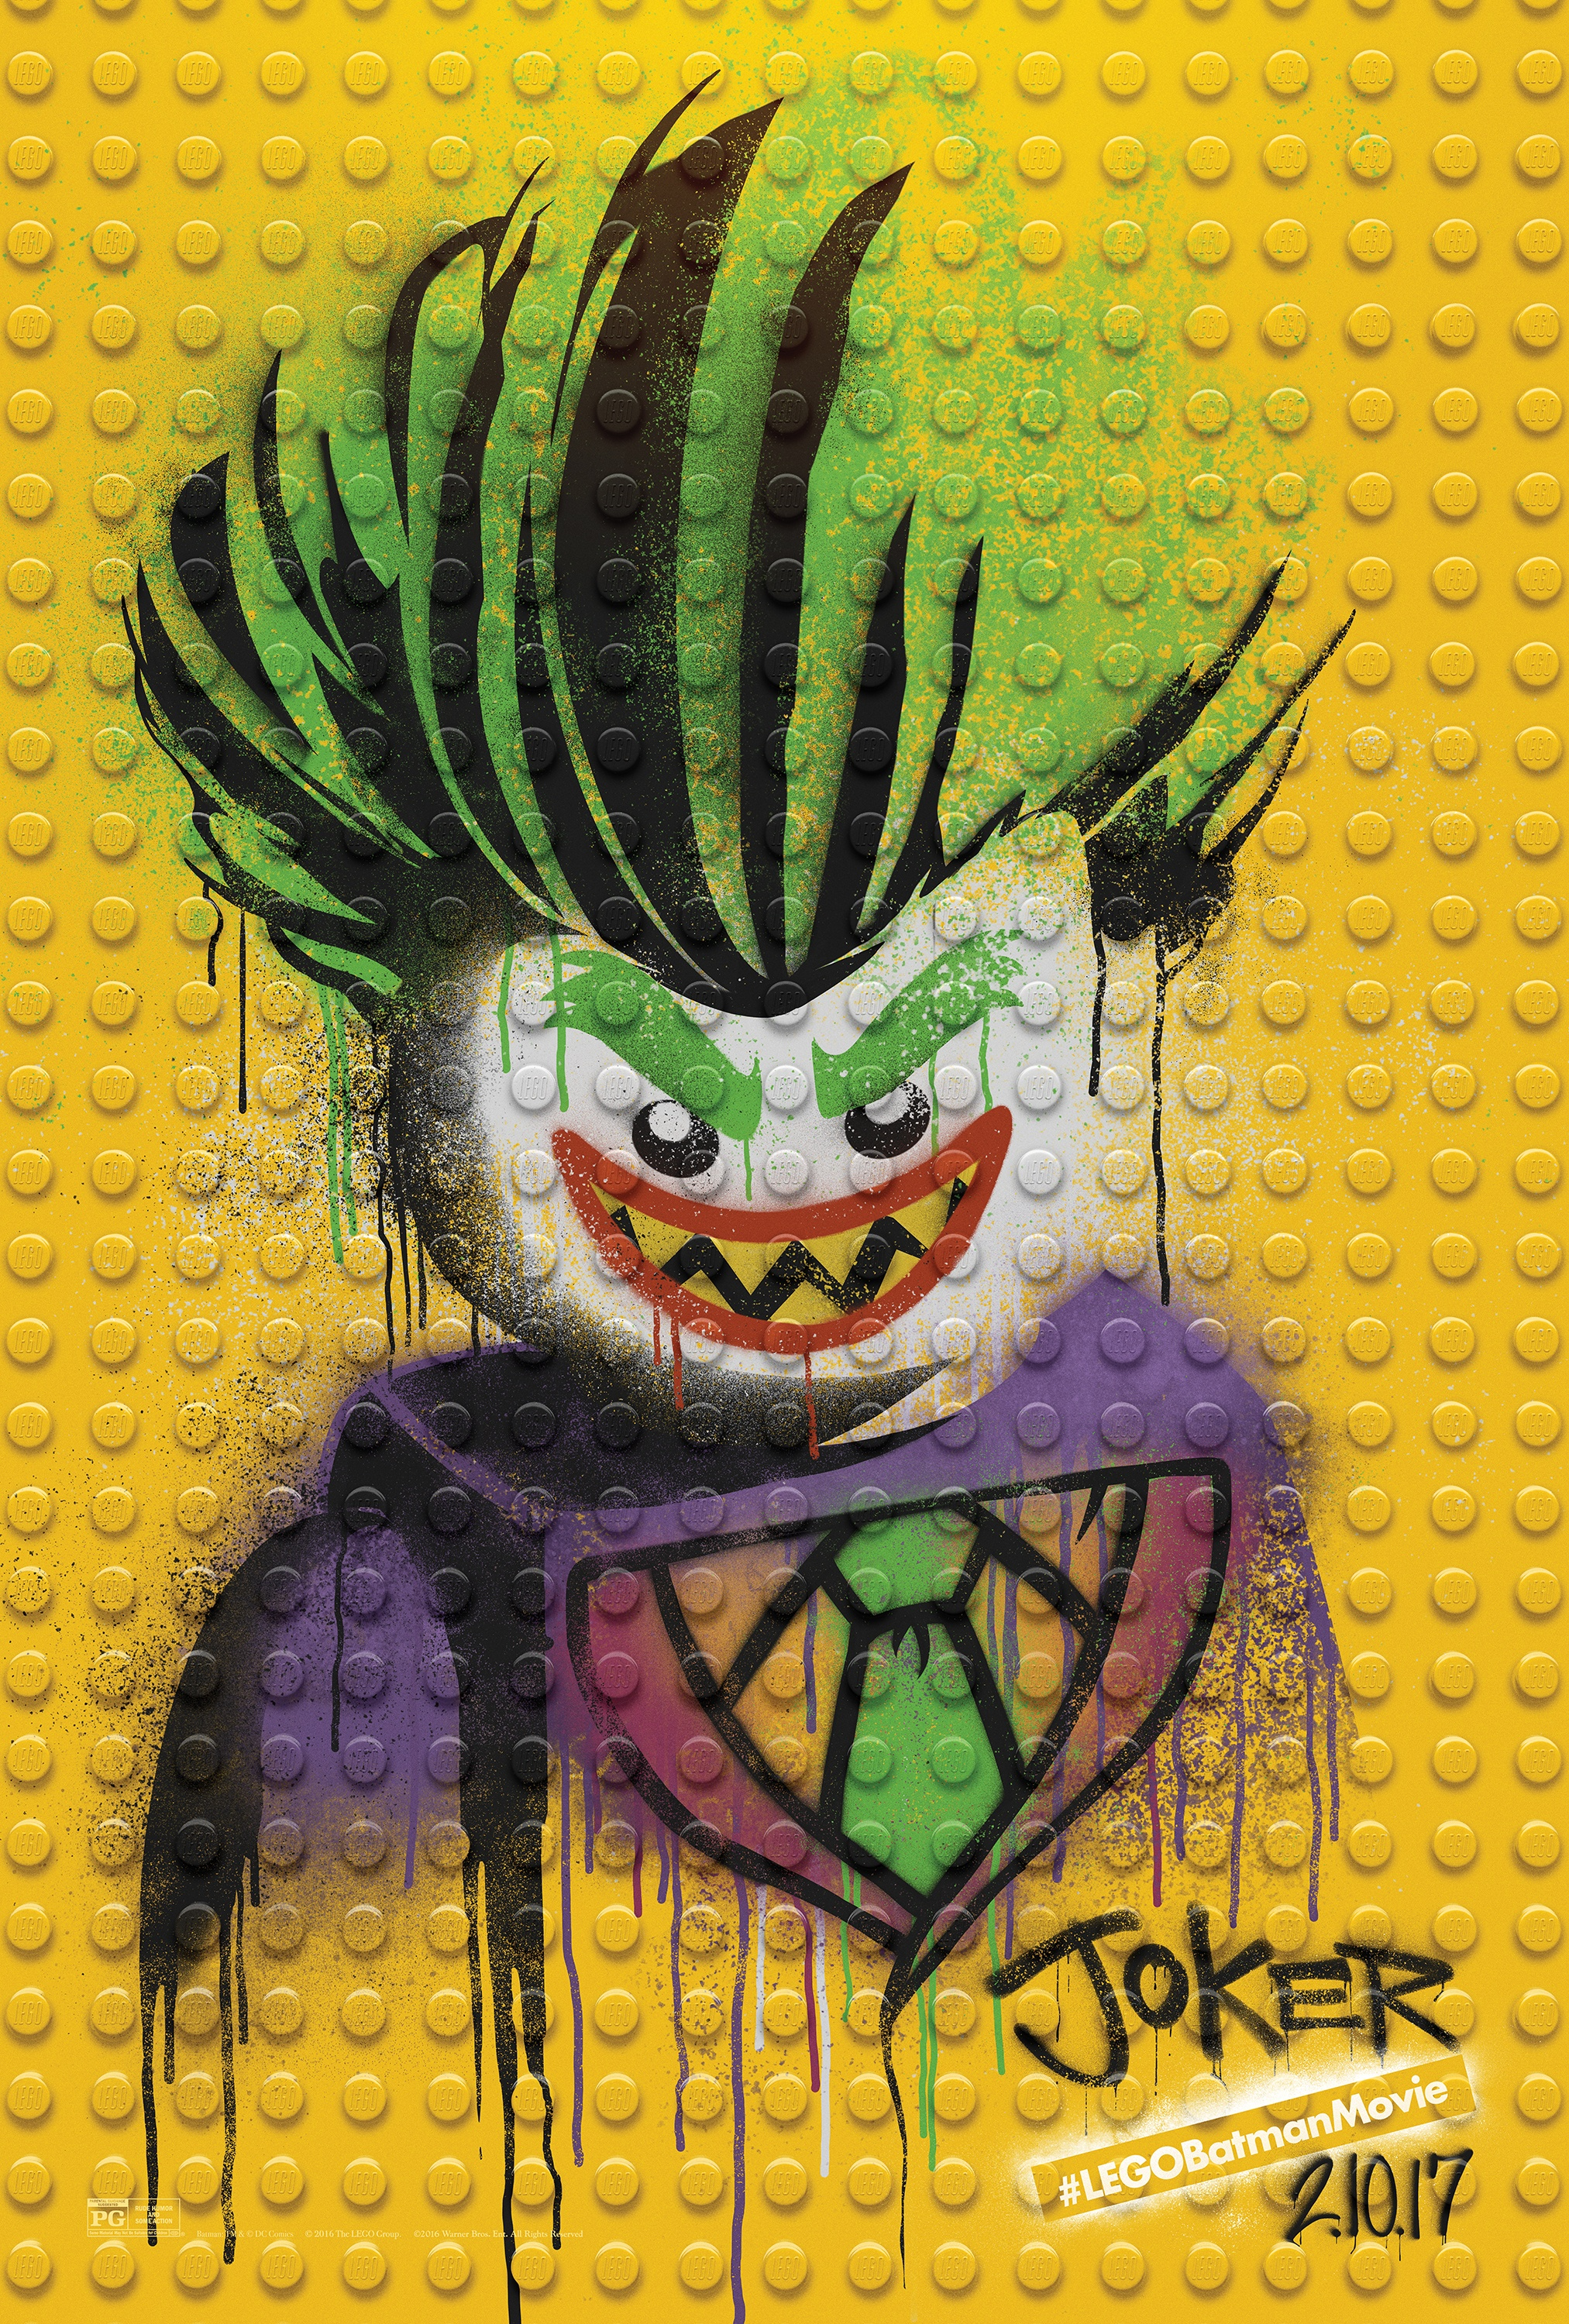 Warner Bros The Lego Batman Movie Graffiti Wild Postings The Joker Clios